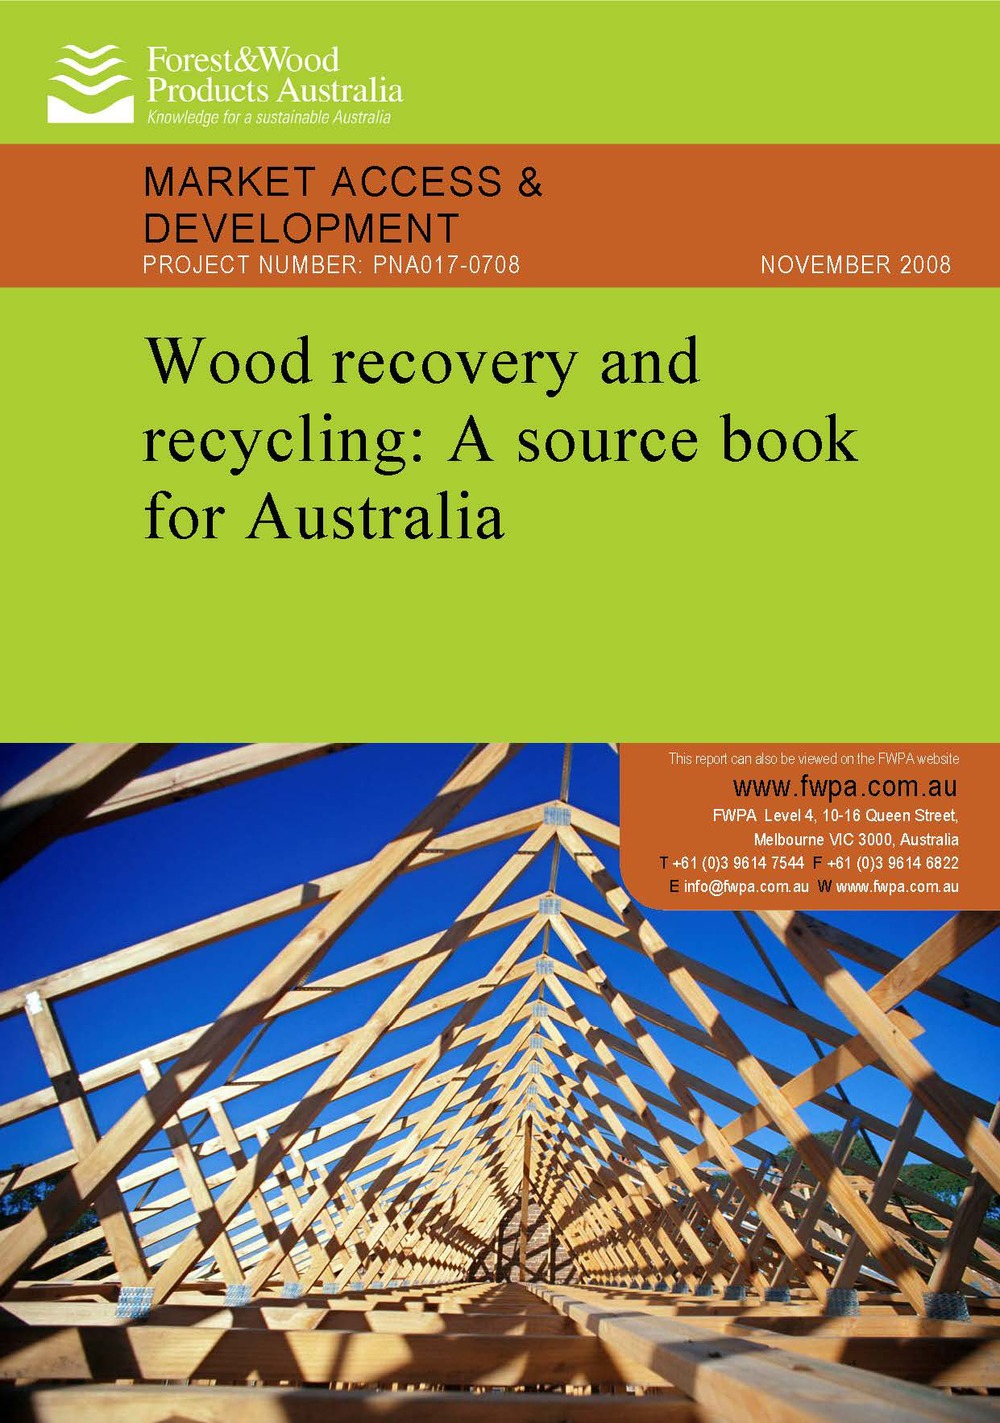 PNA017-0708_Wood_Recycling_0 1.jpg